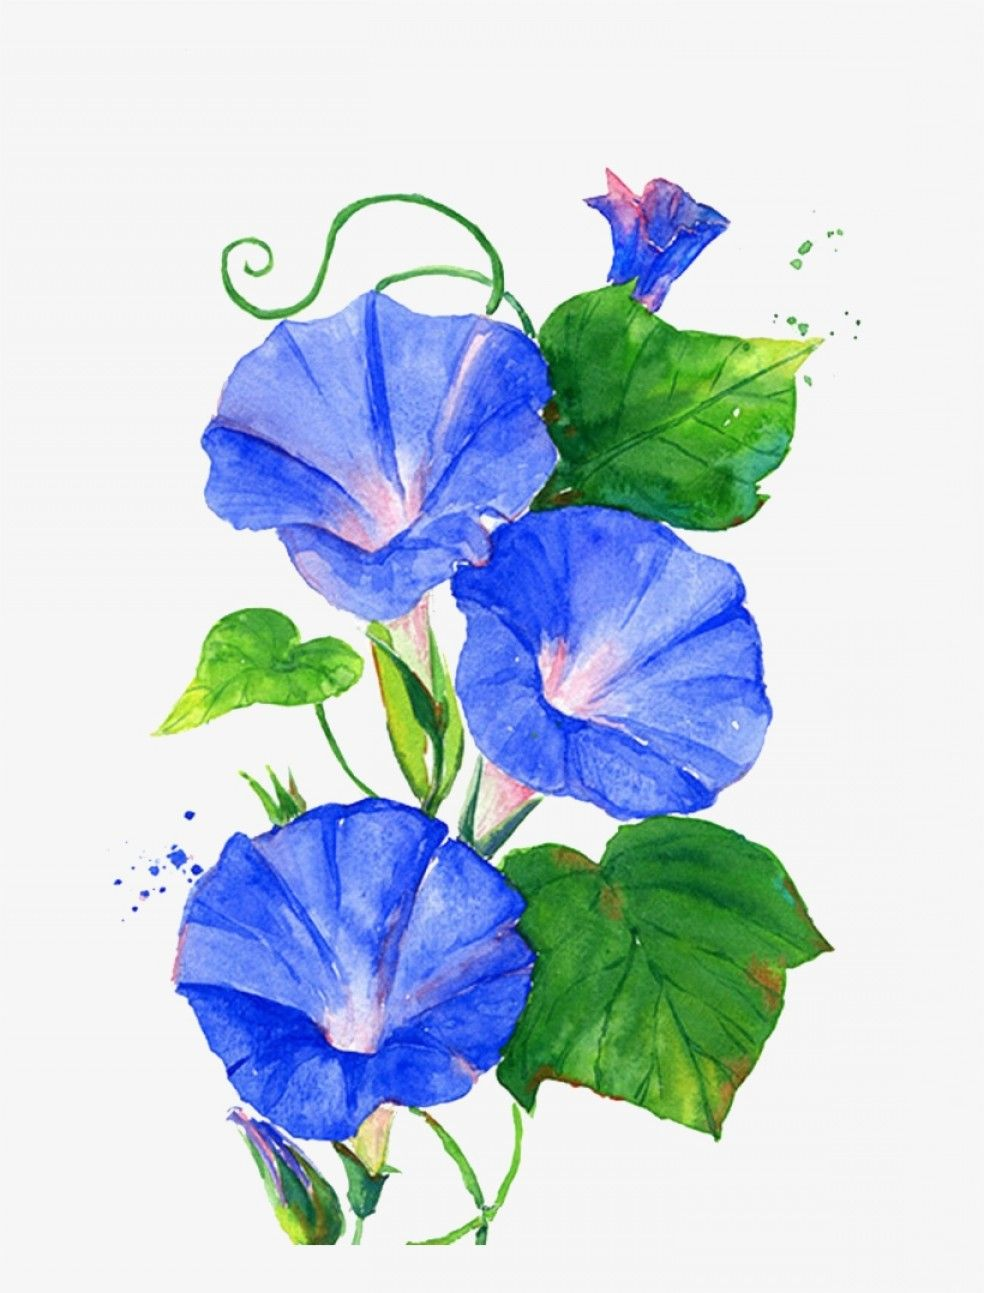 Pin by lovata on CLIPART LIBRARY in 2020 Flower art